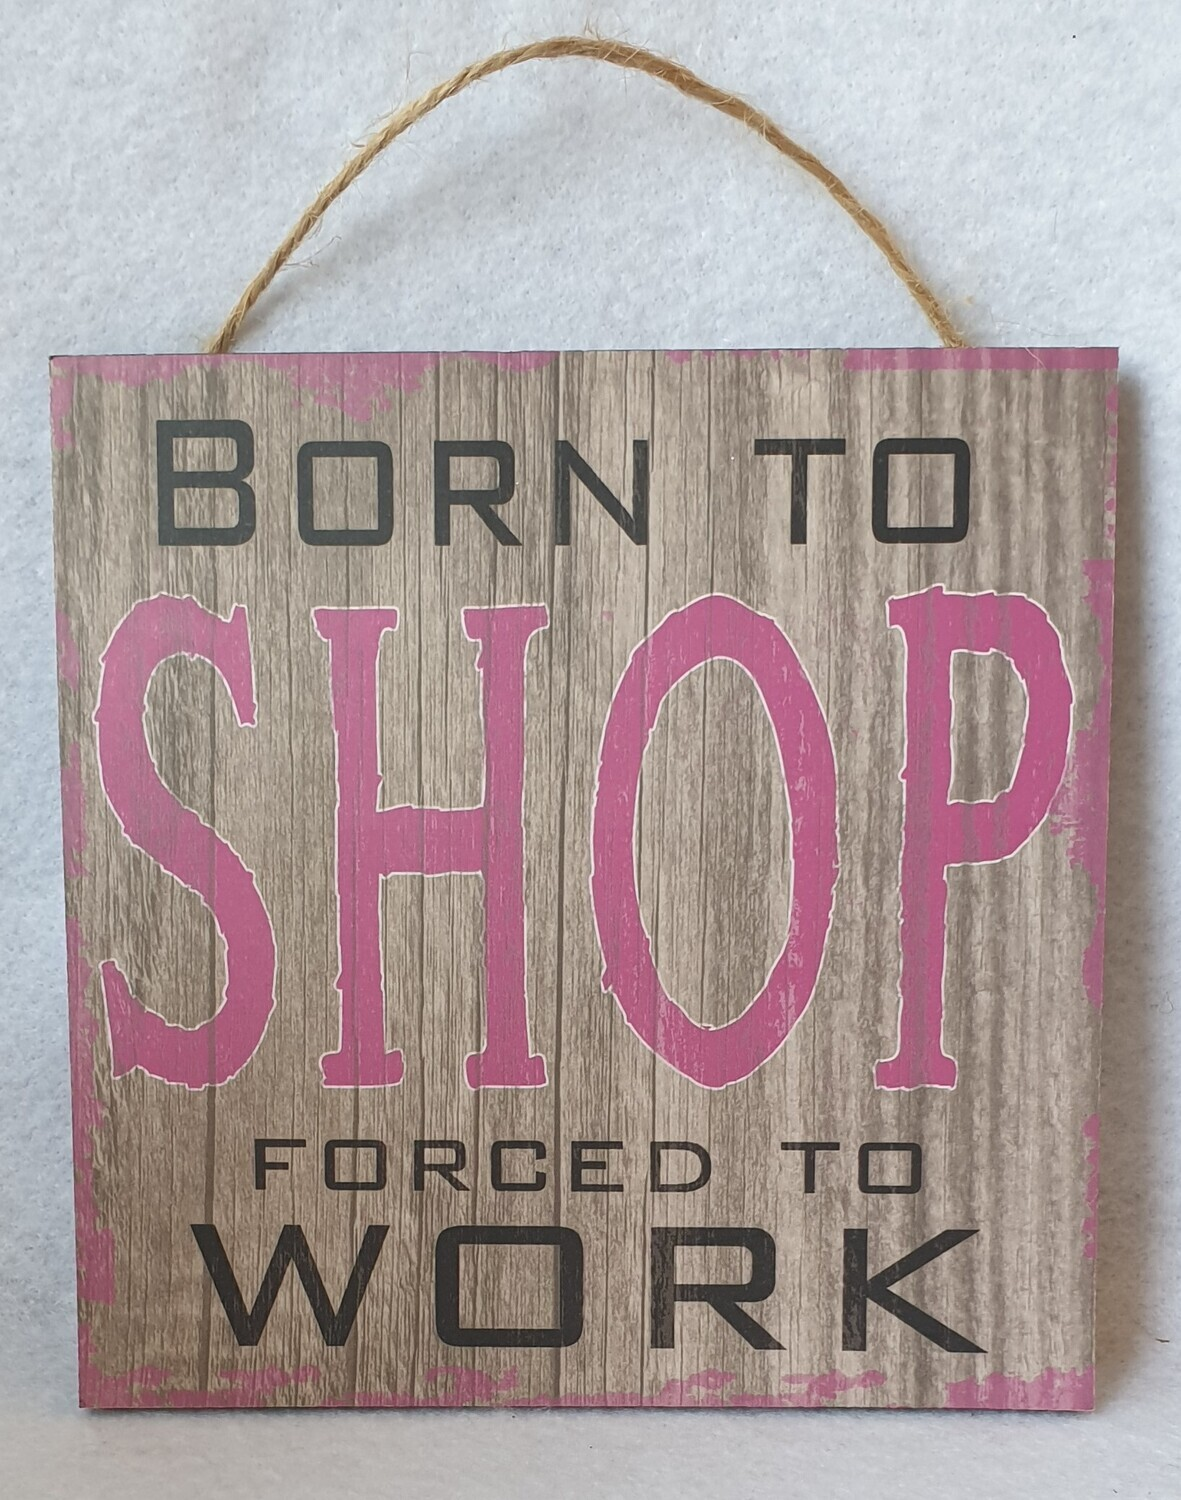 Funny wall plaque. Born to shop forced to work. (slight imperfection)